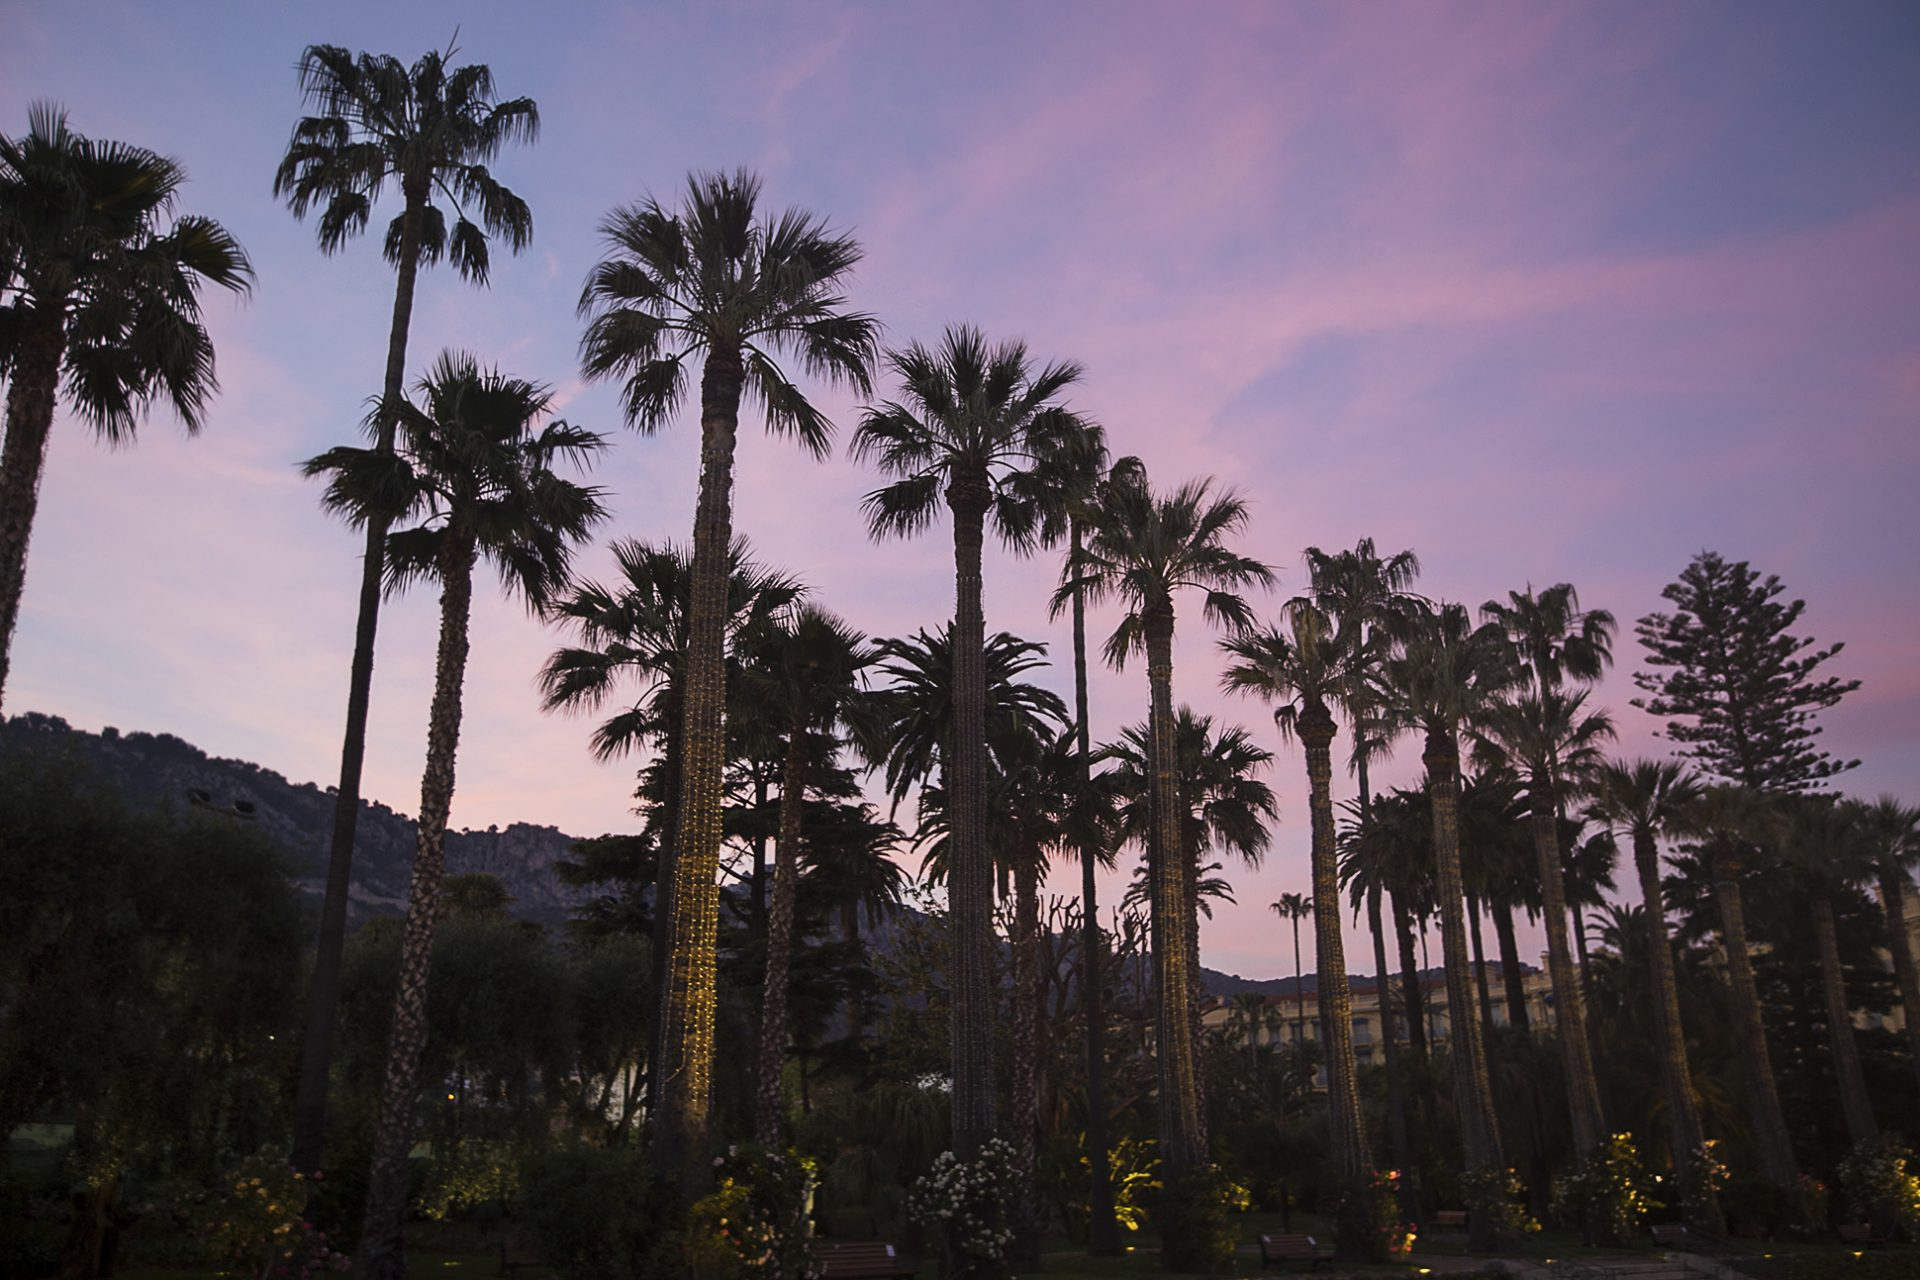 Sunset and palm trees at Beaulieu-sur-mer French Riviera